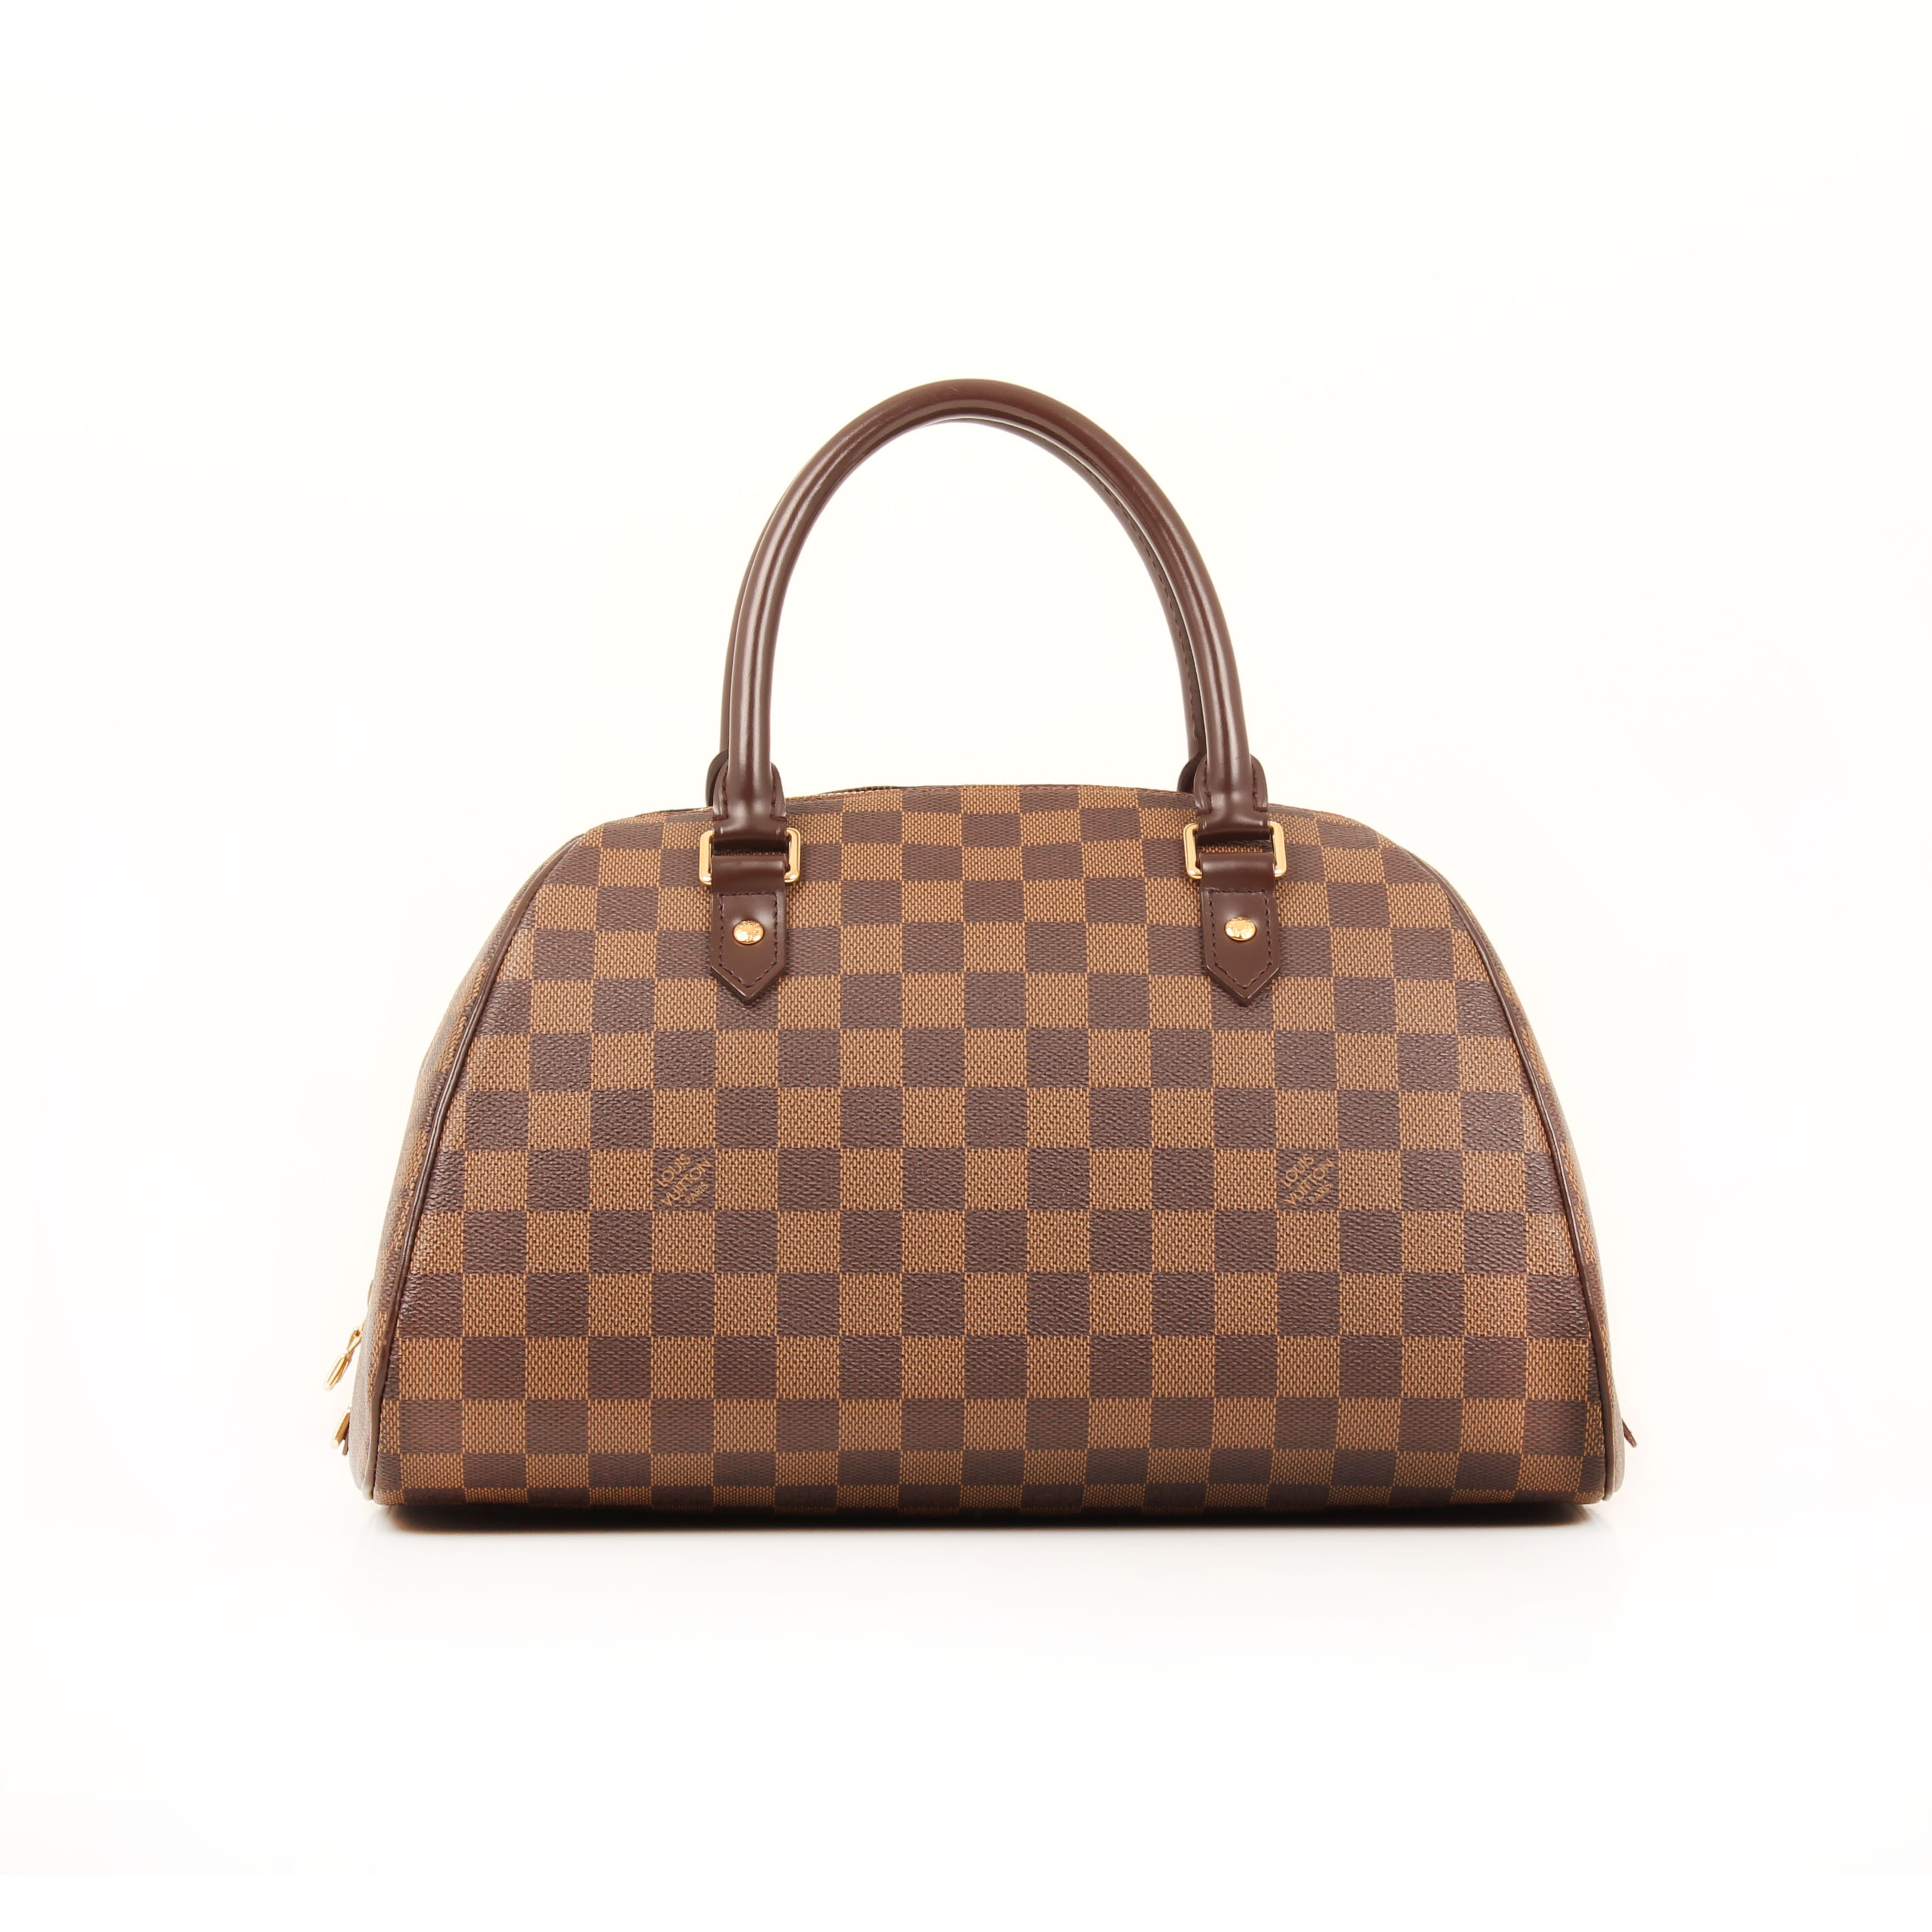 handbag louis vuitton ribera mm damier ebene front